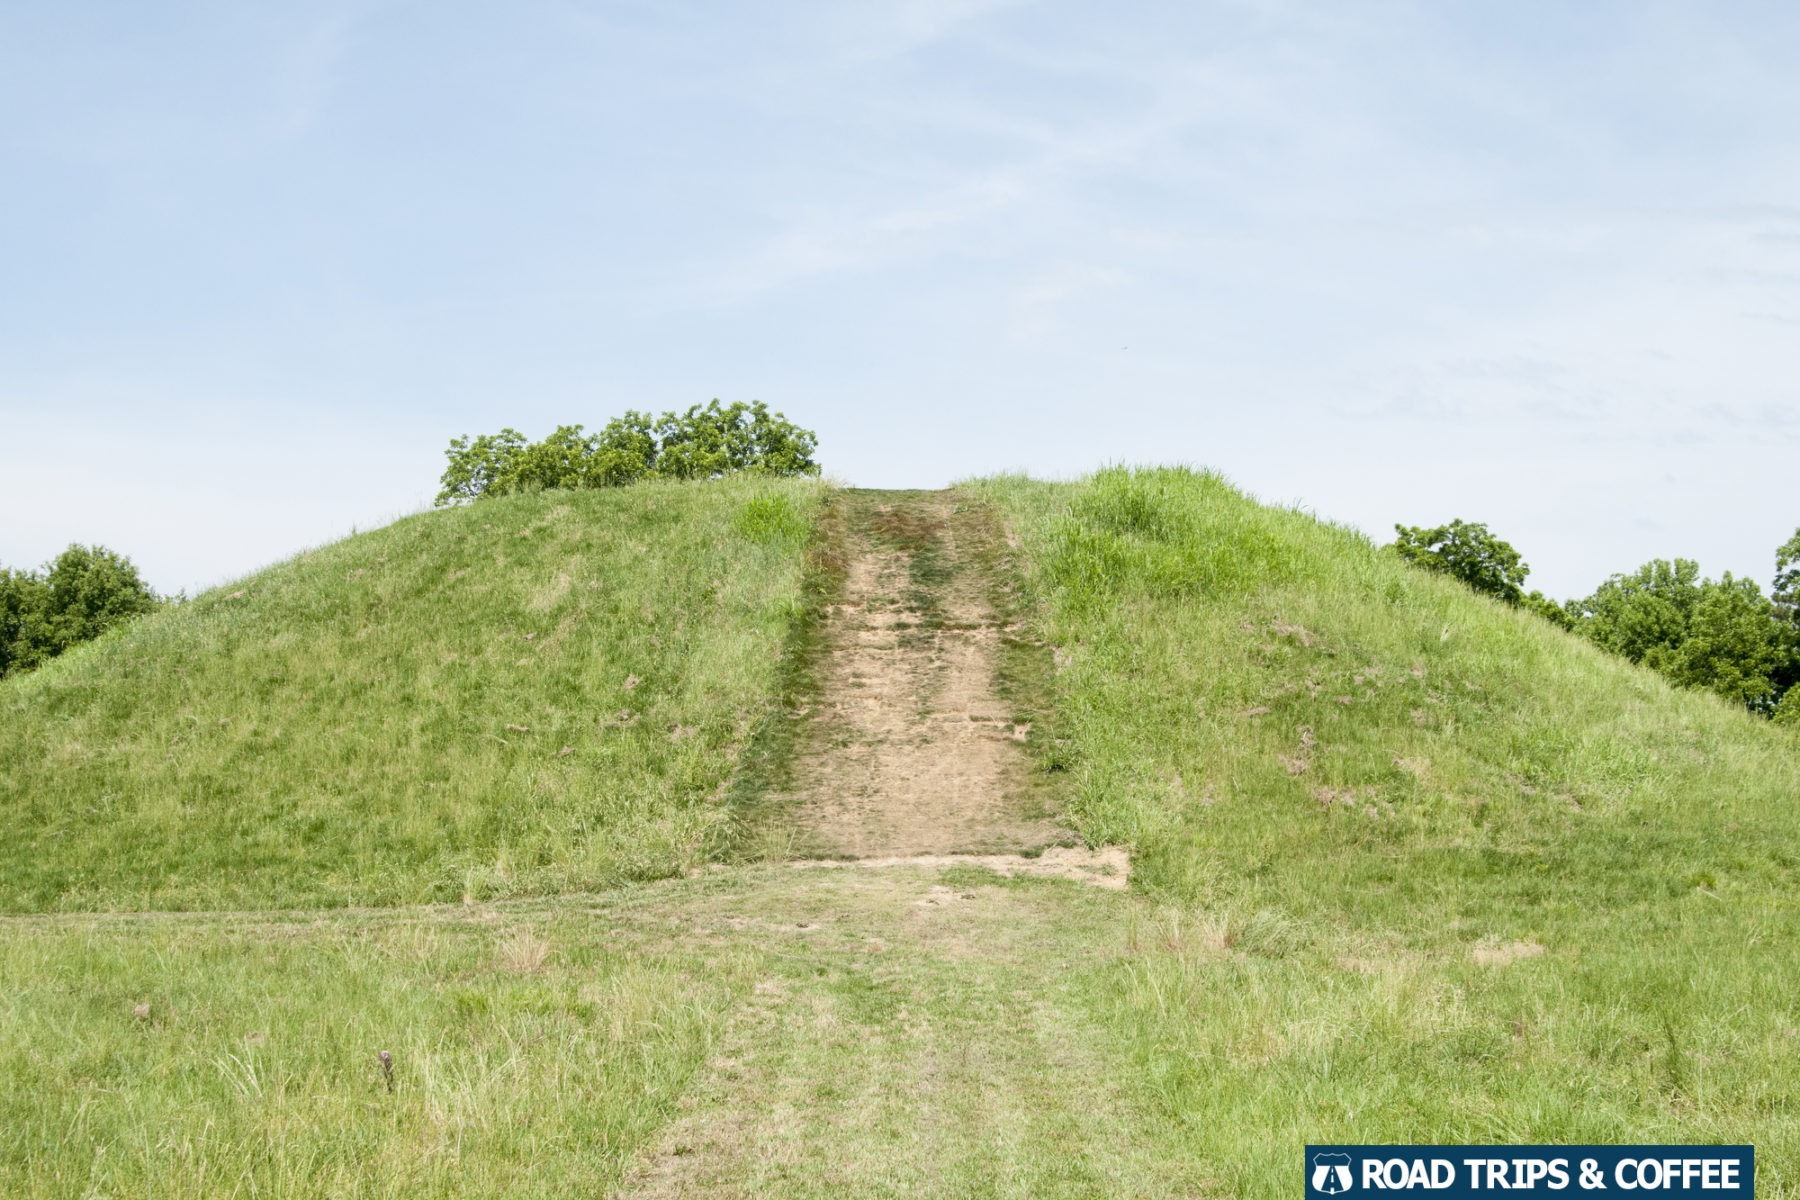 A sharp slope of the grass-covered Emerald Mound at Milepost 10.3 on the Natchez Trace Parkway in MIssissippi